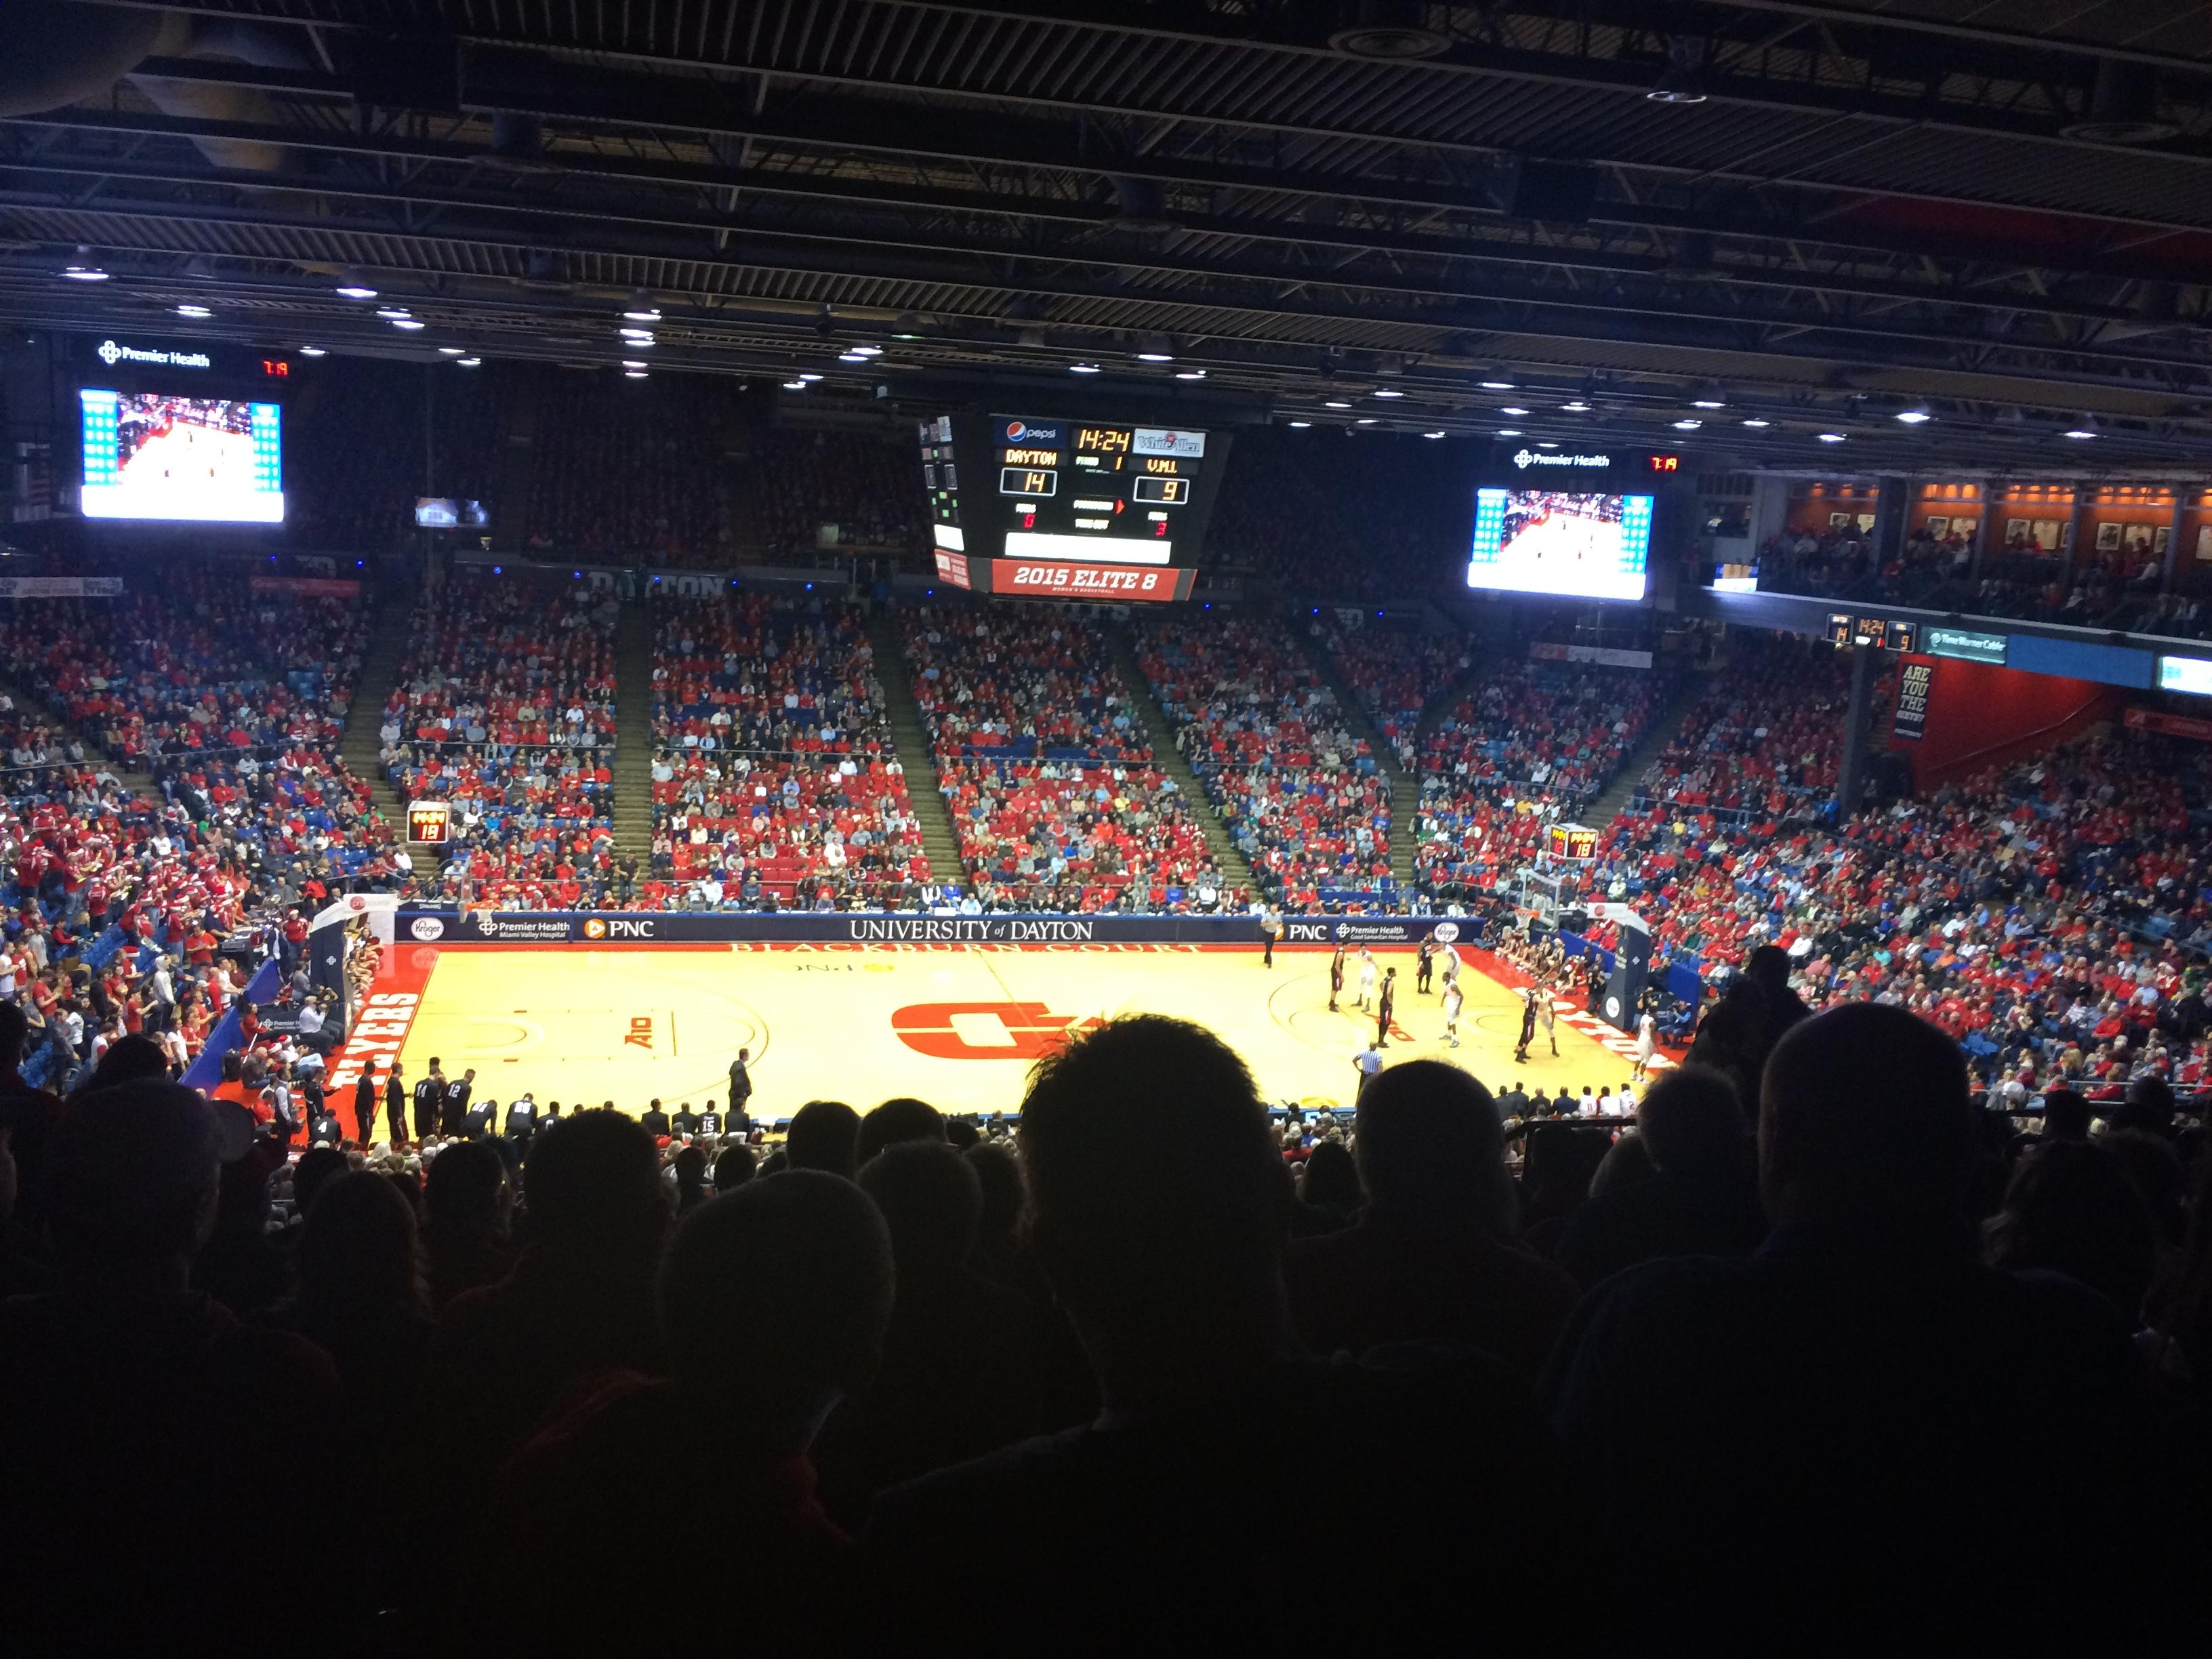 University of Dayton Arena Section 310 Rangée K Siège 9